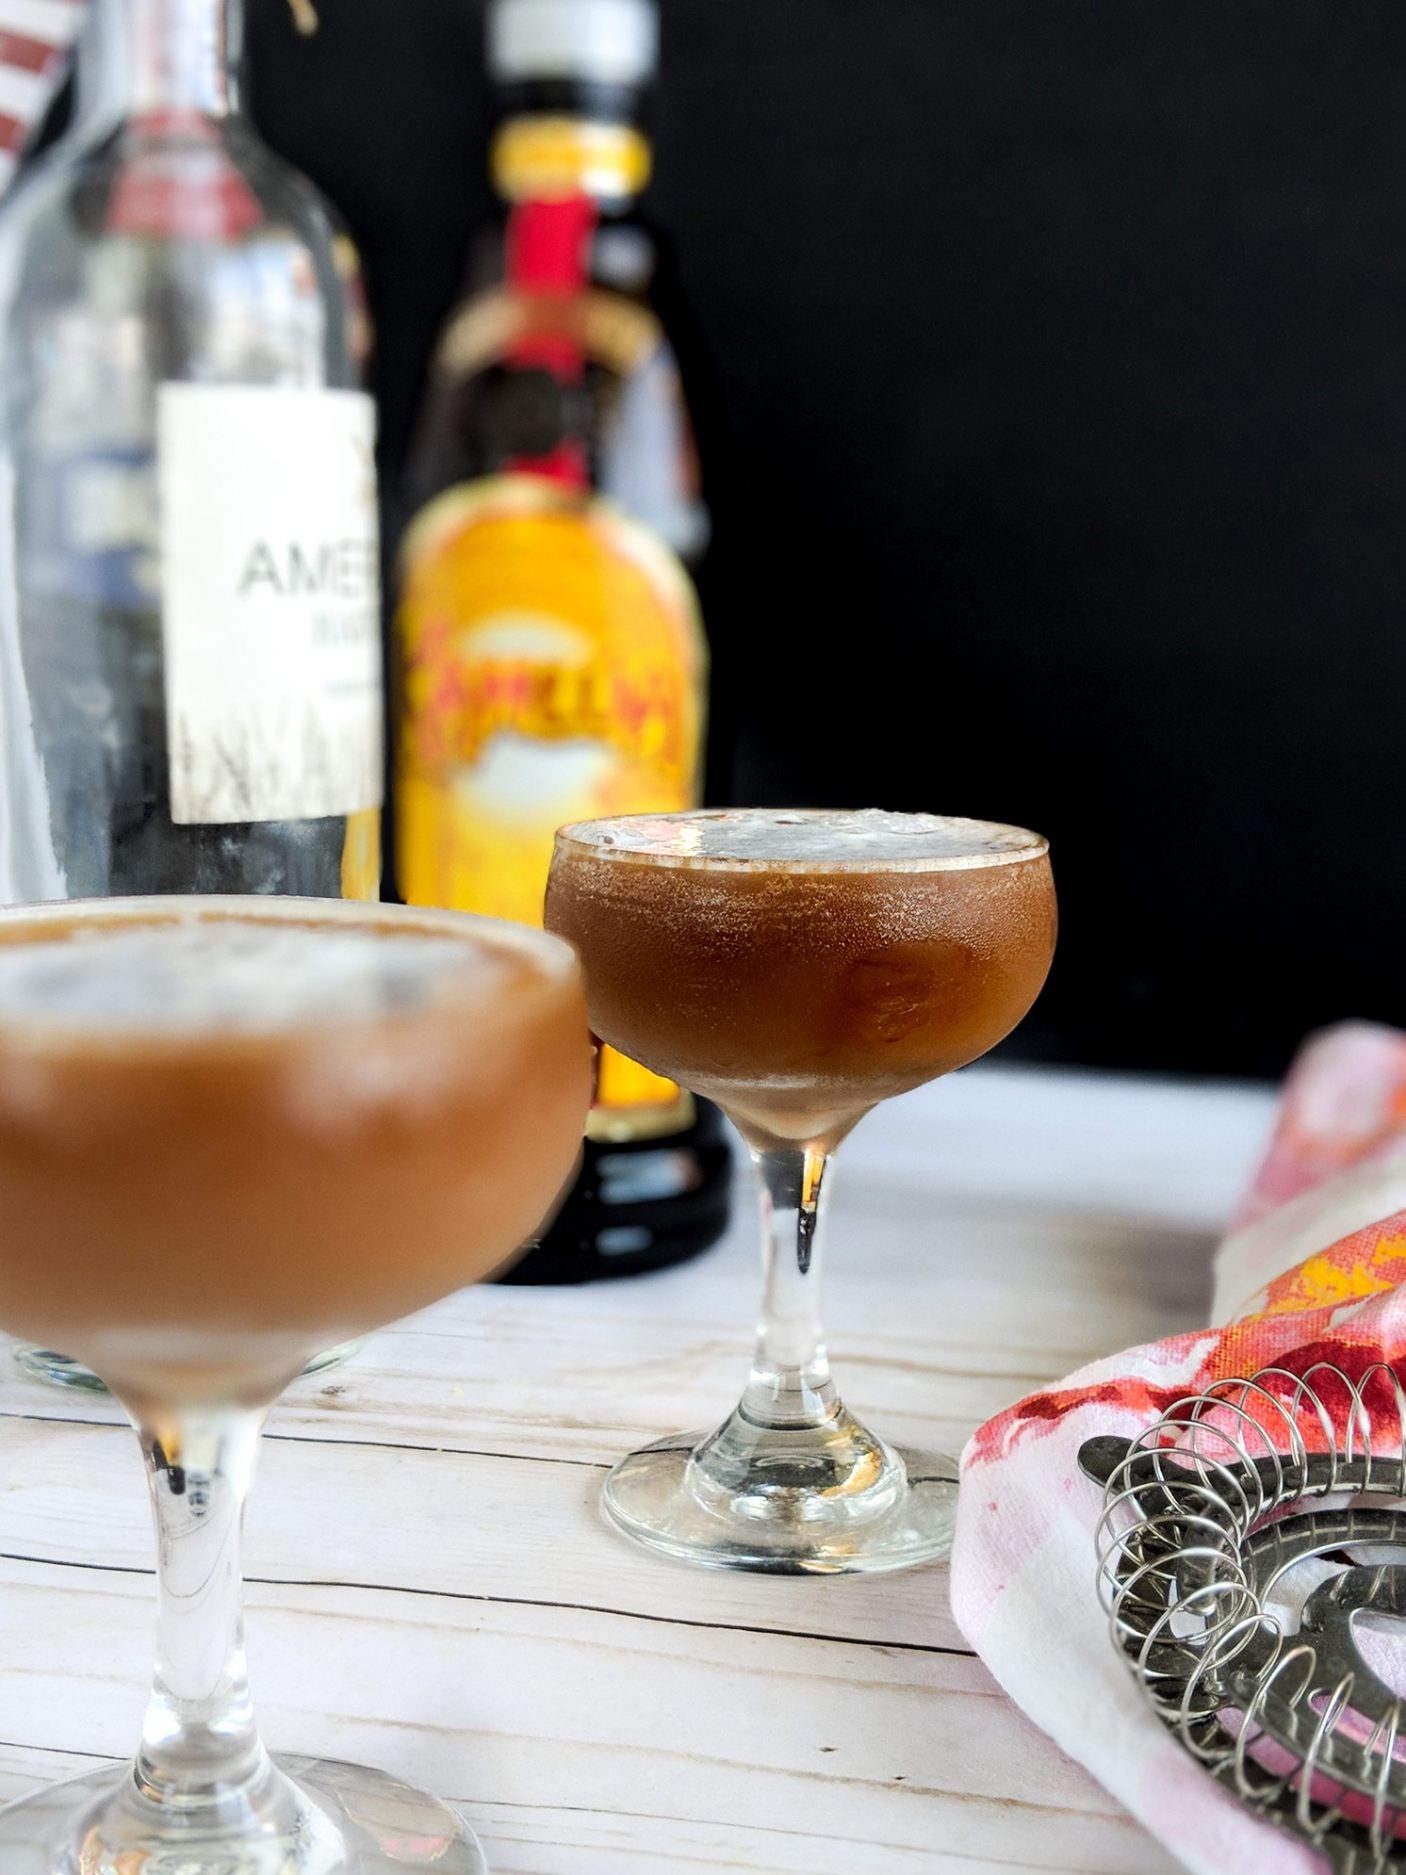 This Mocha Espresso Martini is the perfect blend of chocolate and coffee liqueurs chilled in a coup glass. This brunch cocktail is a nice change of pace from the classic Mimosa for a morning cocktail. Easy coffee cocktail. Easy vodka cocktail. #brunch #brunchrecipe #brunchcocktail #cocktail #cocktailrecipe #coffee #coffeerecipe #morning #martini #vodka #vodkacocktail elletalk